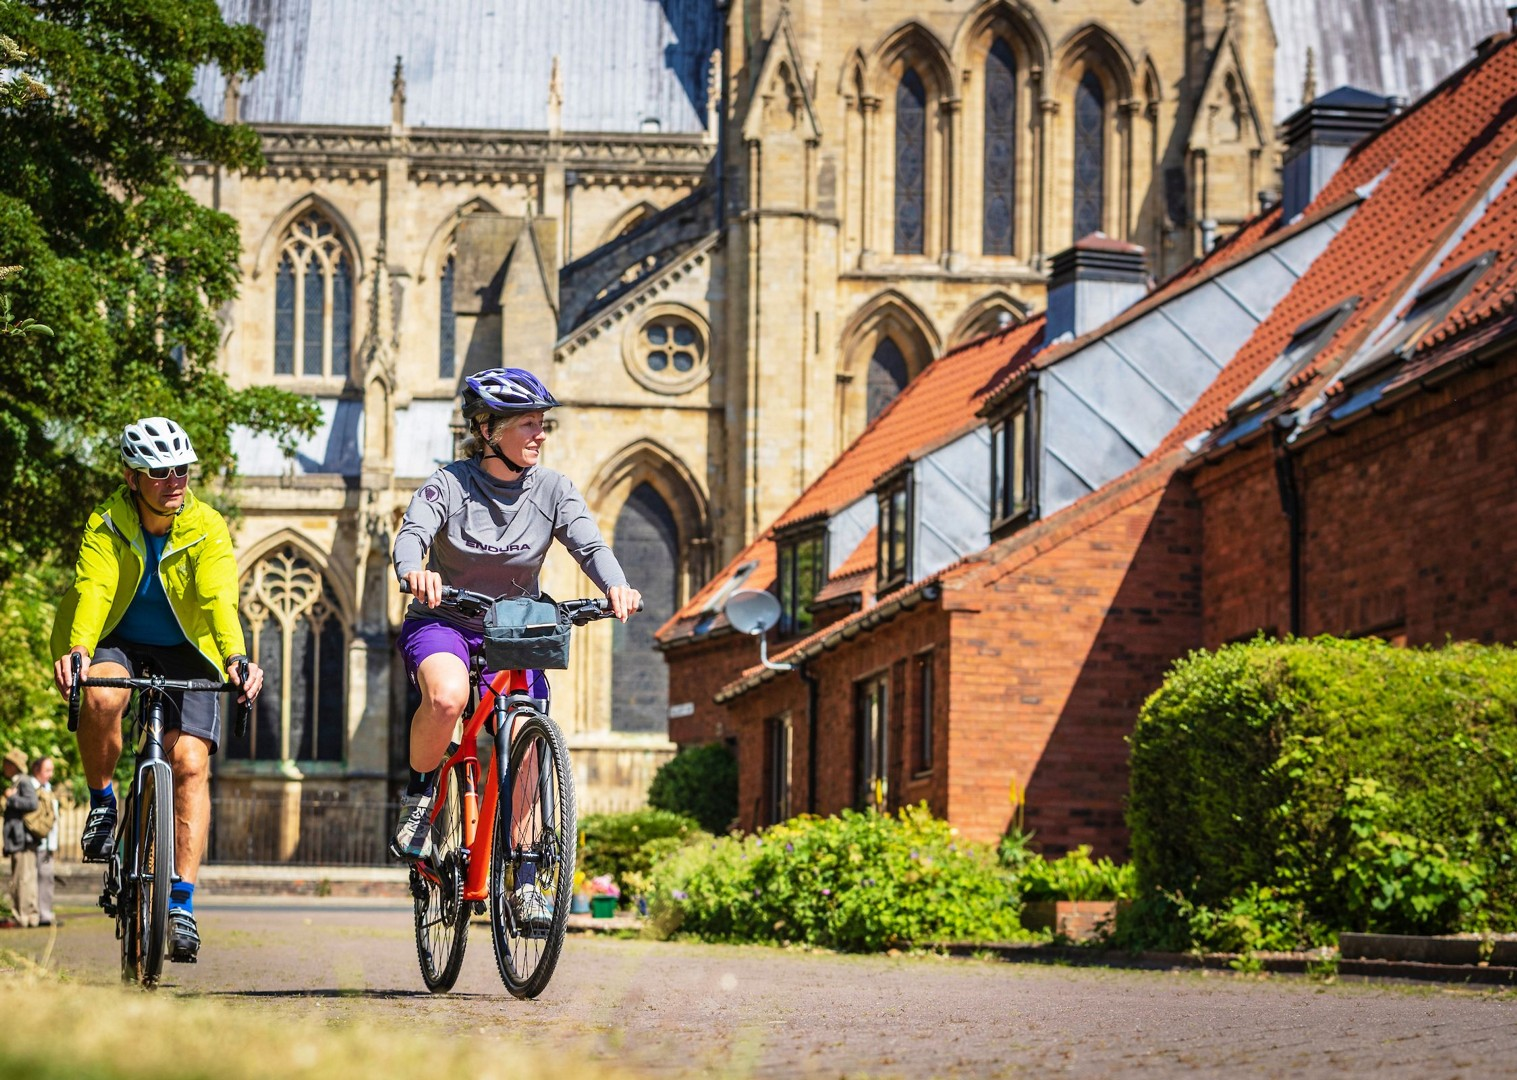 beverley-minster-self-guided-cycling-holiday.jpg - UK - Yorkshire Wolds - 5 Days Cycling - Self-Guided Leisure Cycling Holiday - Leisure Cycling